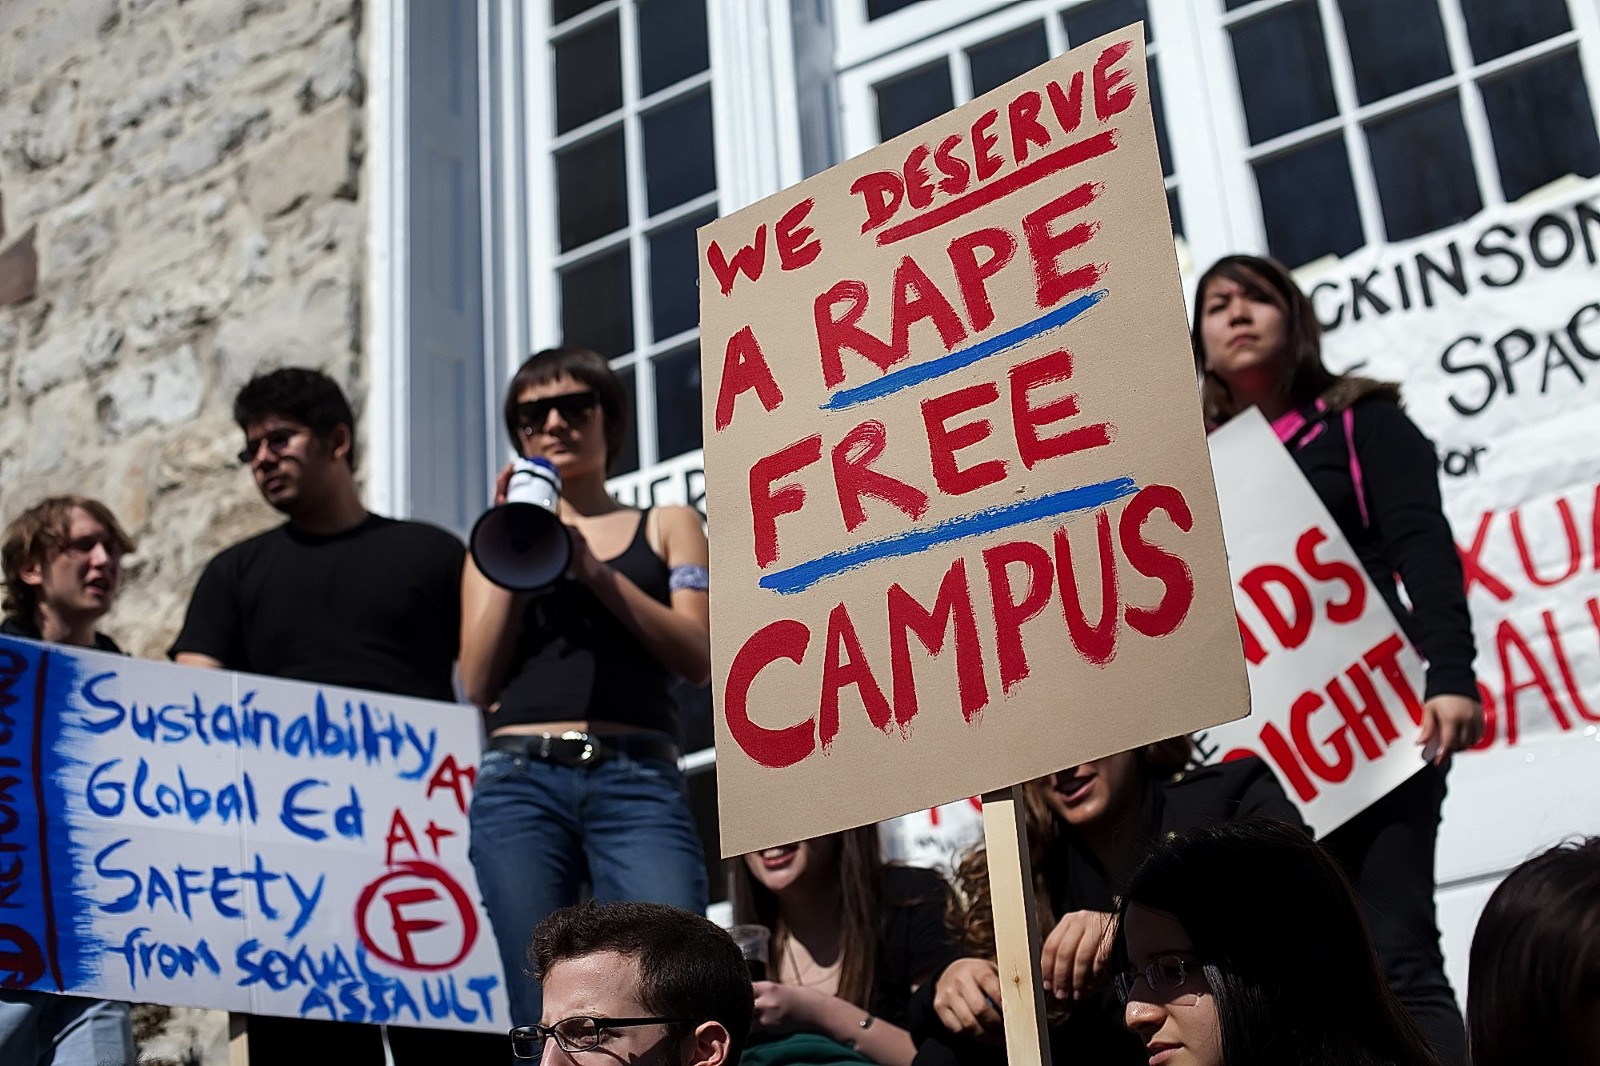 Sexual harassment in colleges and universities